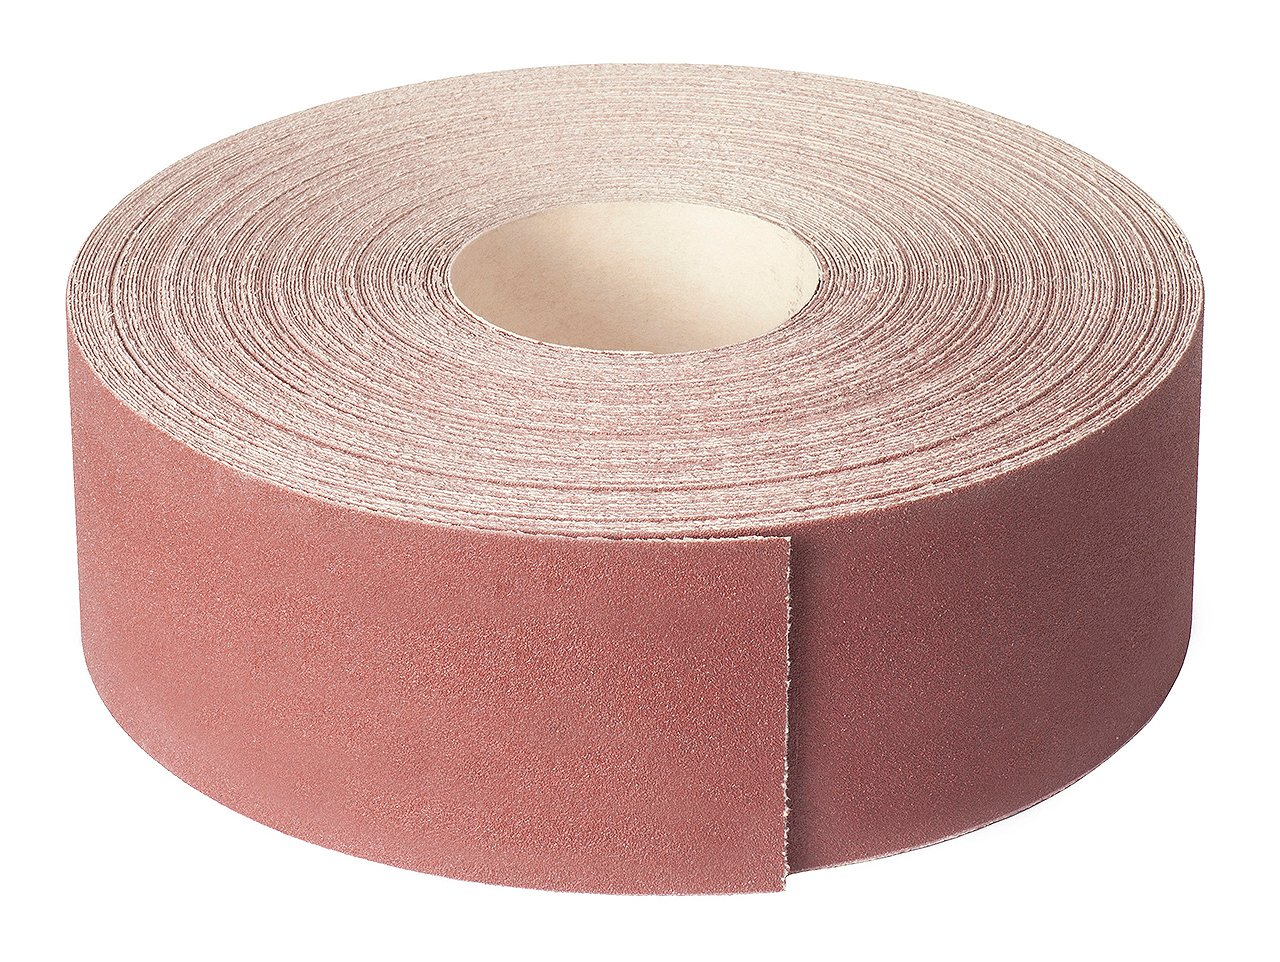 Image of   Sanding belt roll 50 m - grit 100